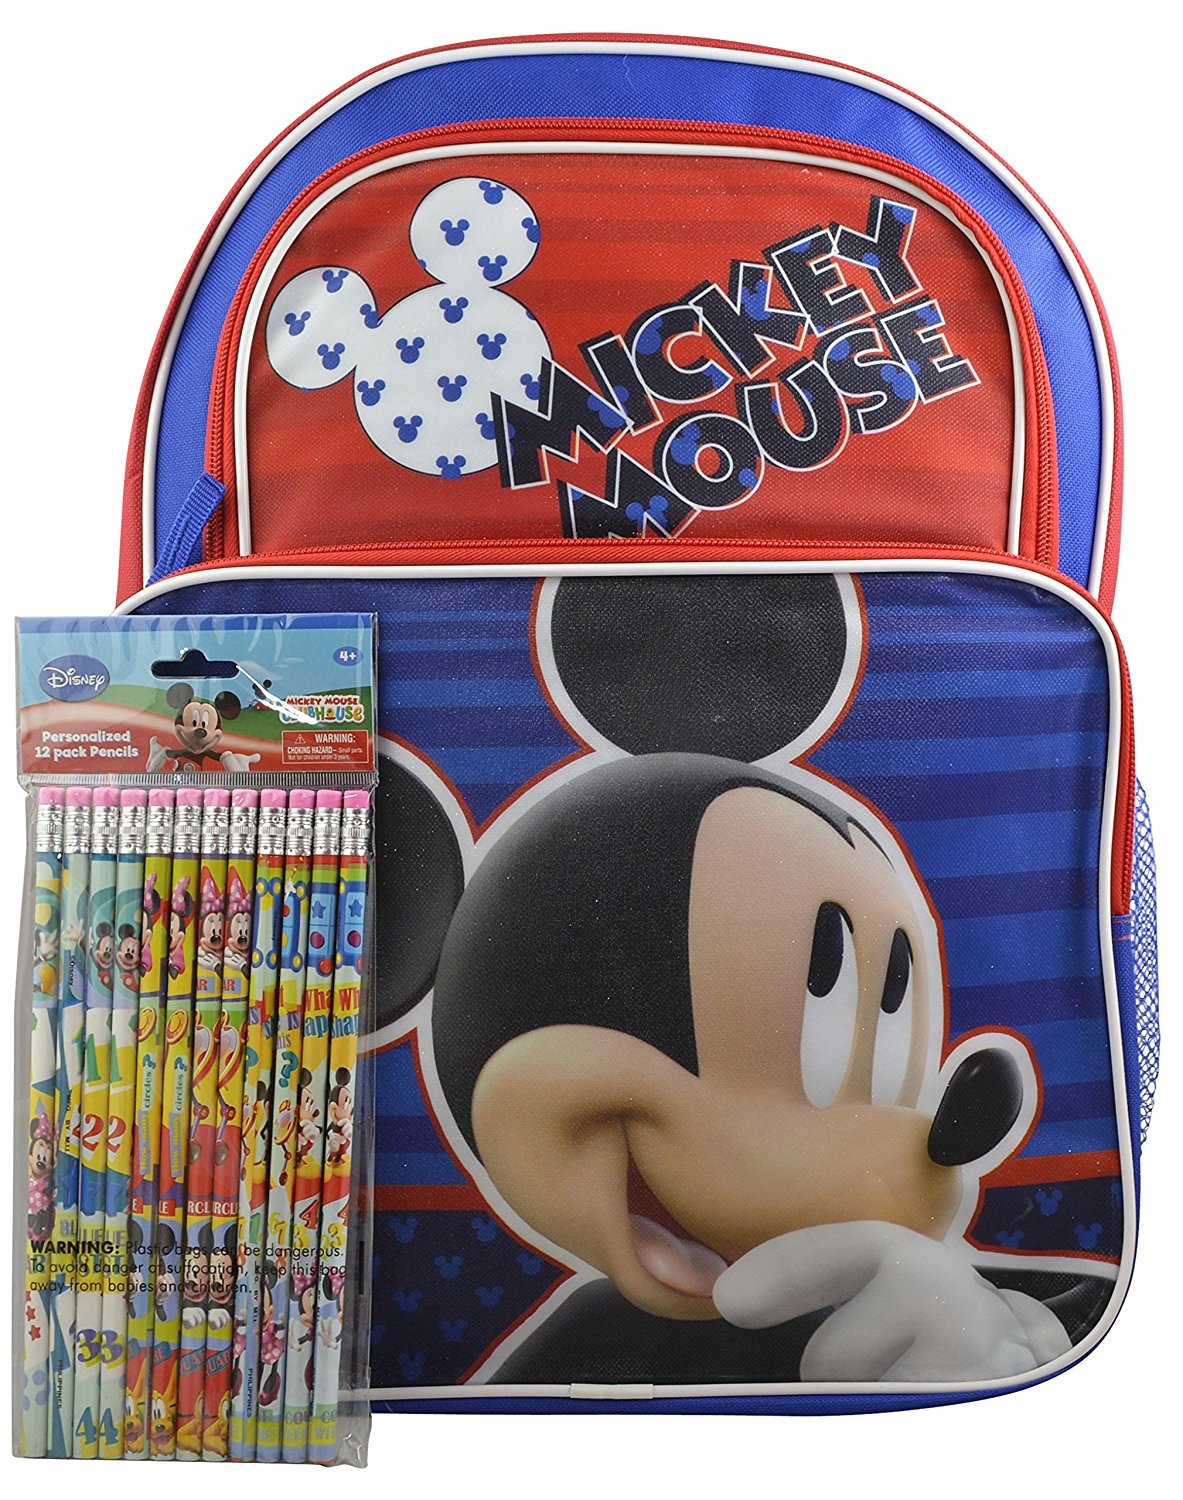 "Disney Mickey Mouse Clubhouse Boys' 16"" Backpack w/ Bonus12pk Pencils New"